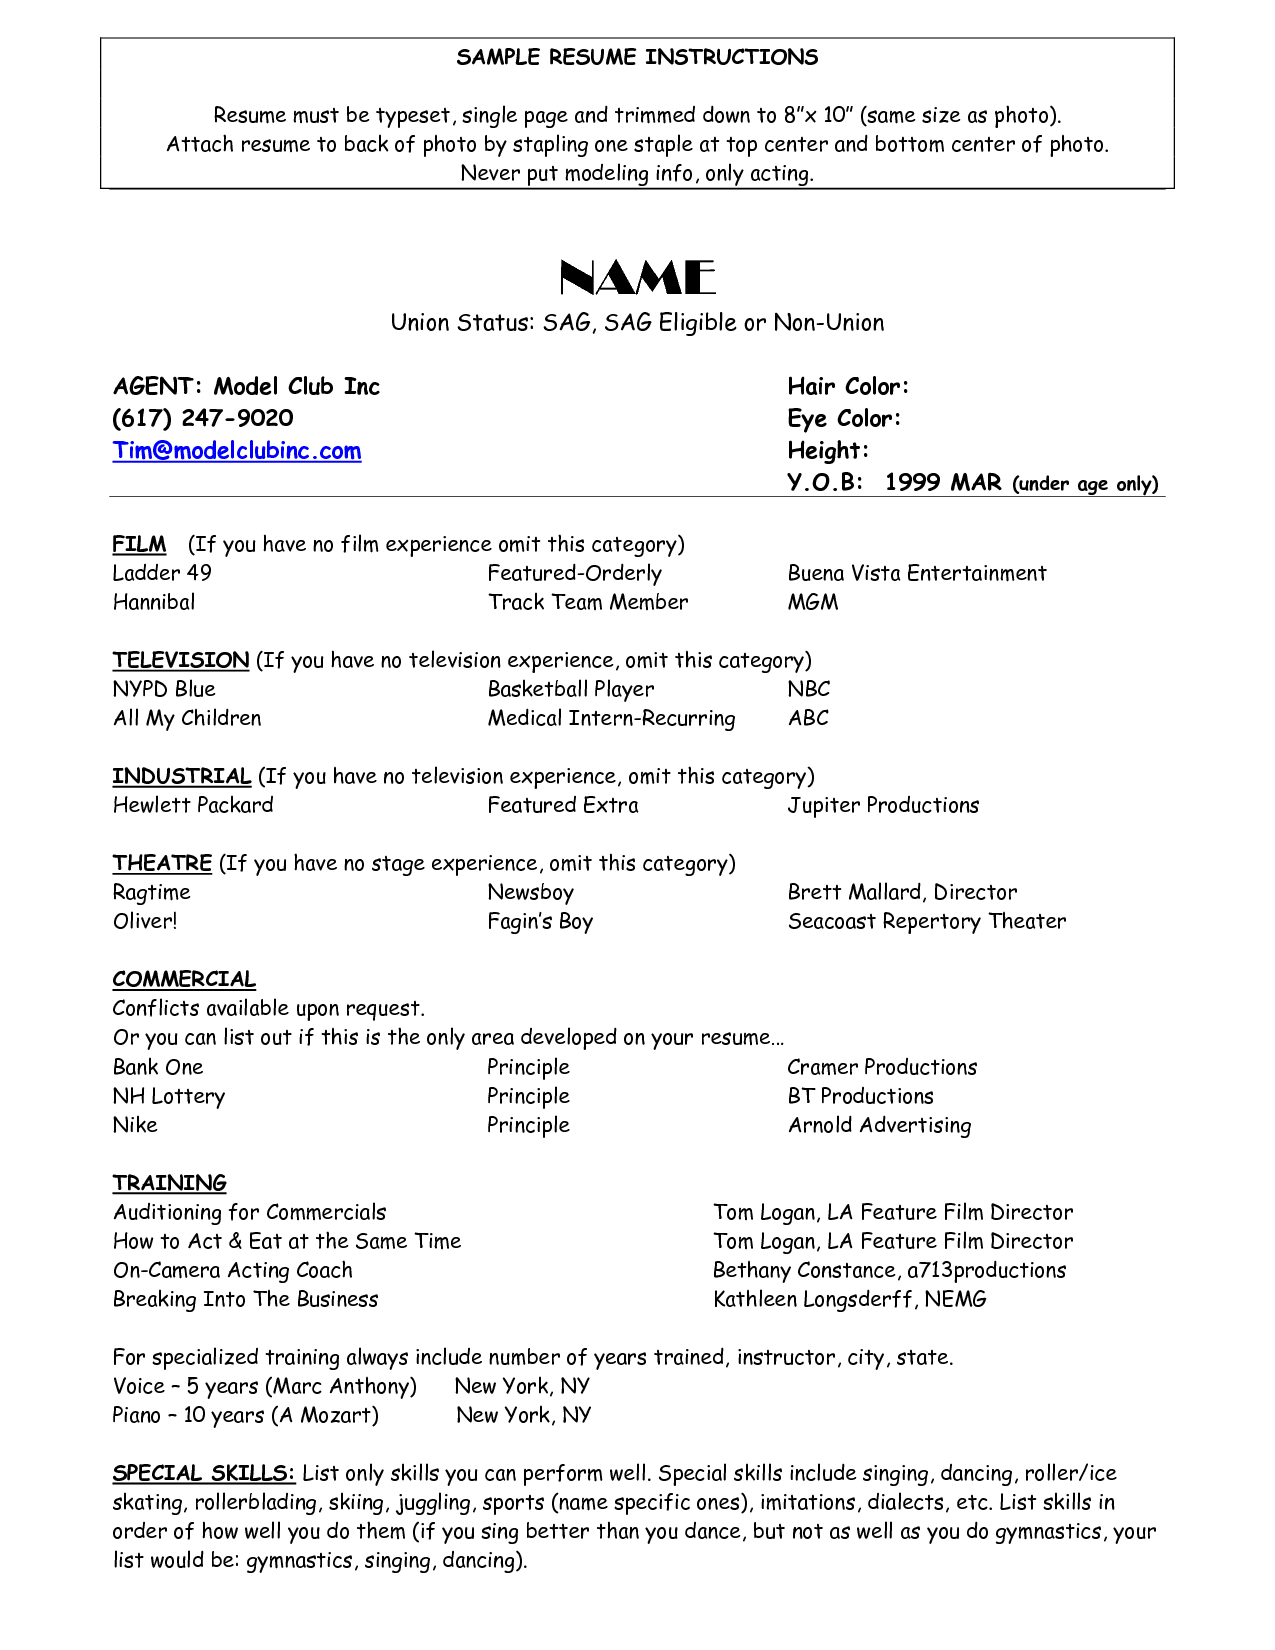 resume for child actor